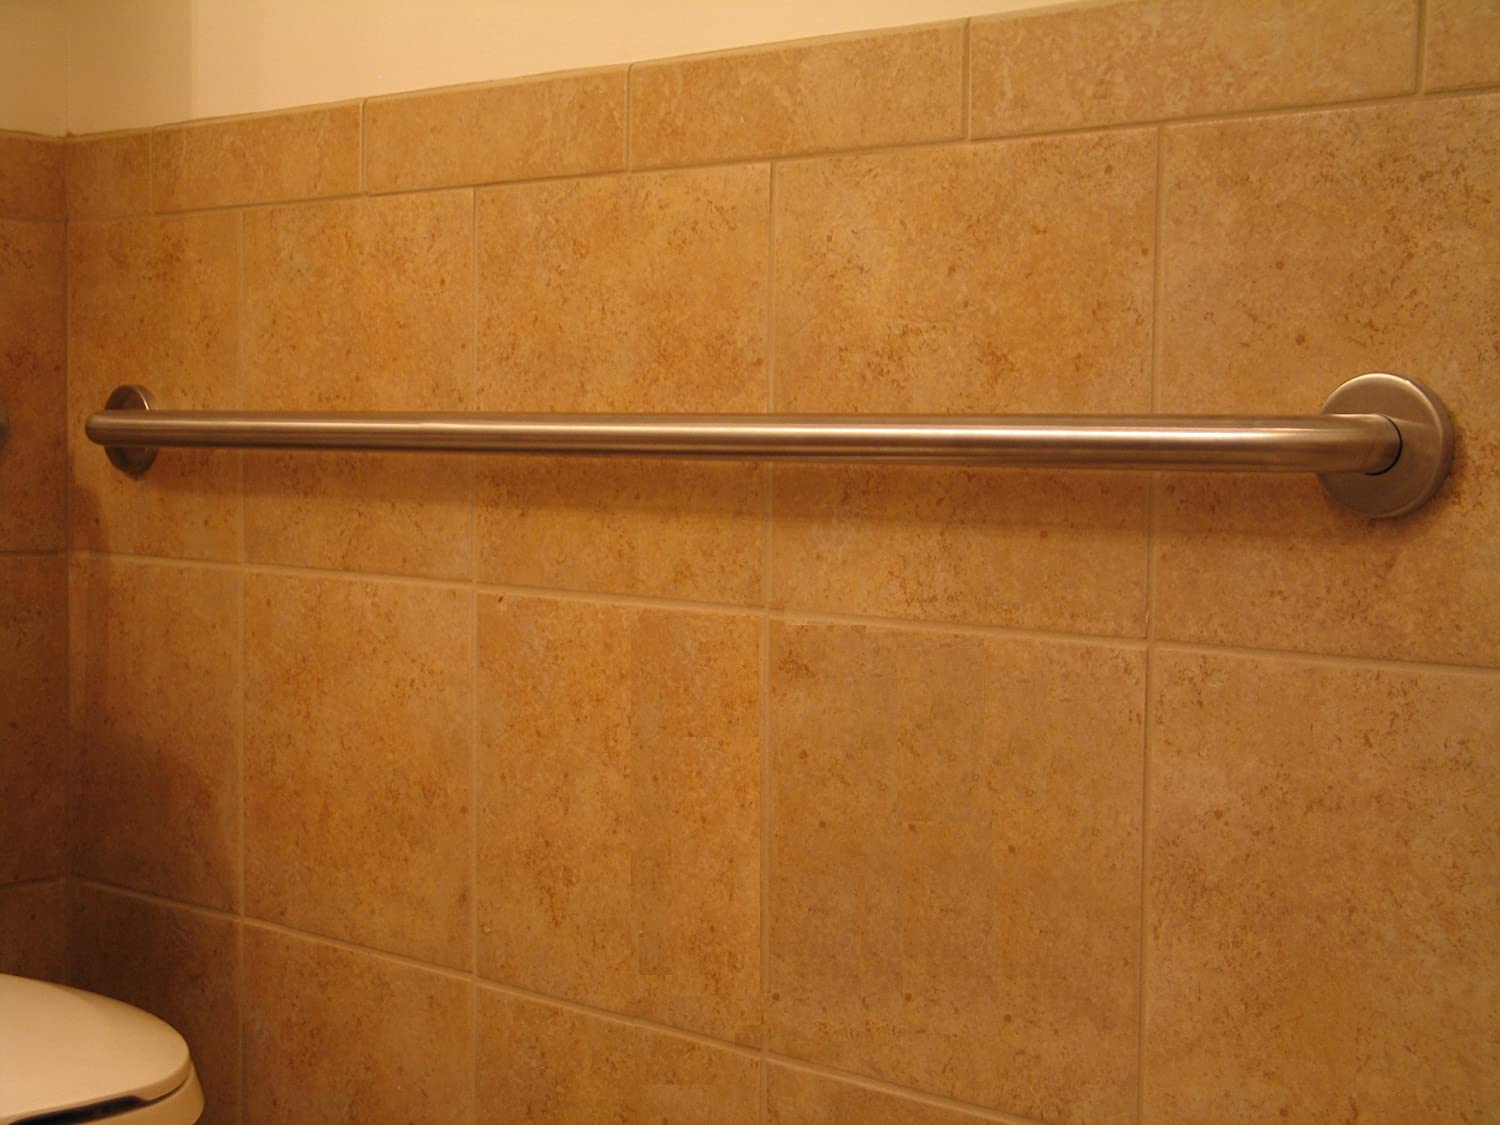 Amazon.com : FPL 36 Inch Stainless Steel Grab Bar with Concealed ...